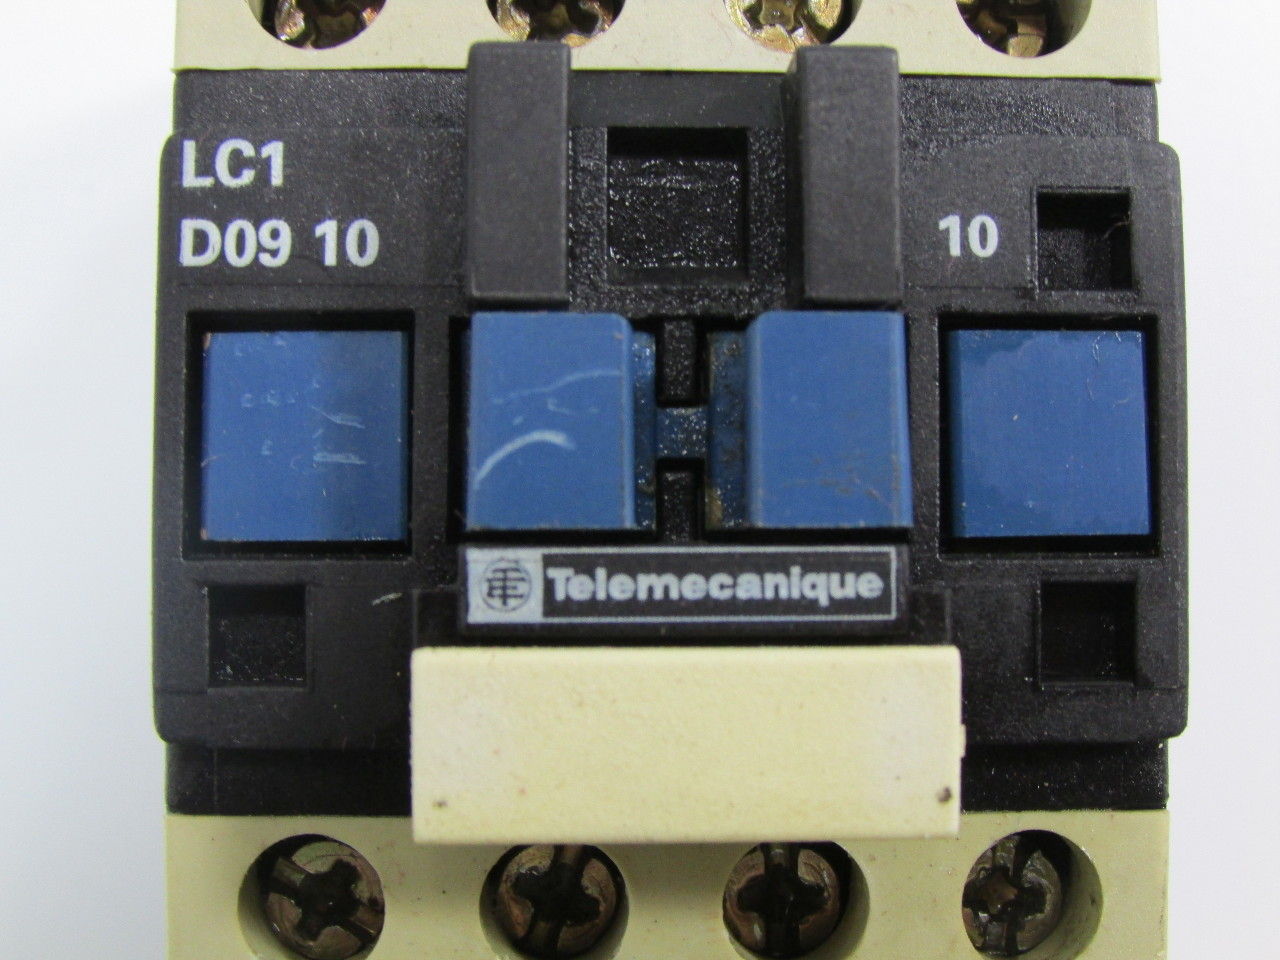 Lot Of  20  Telemecanique Lc1 D09 10 Contactor 110v